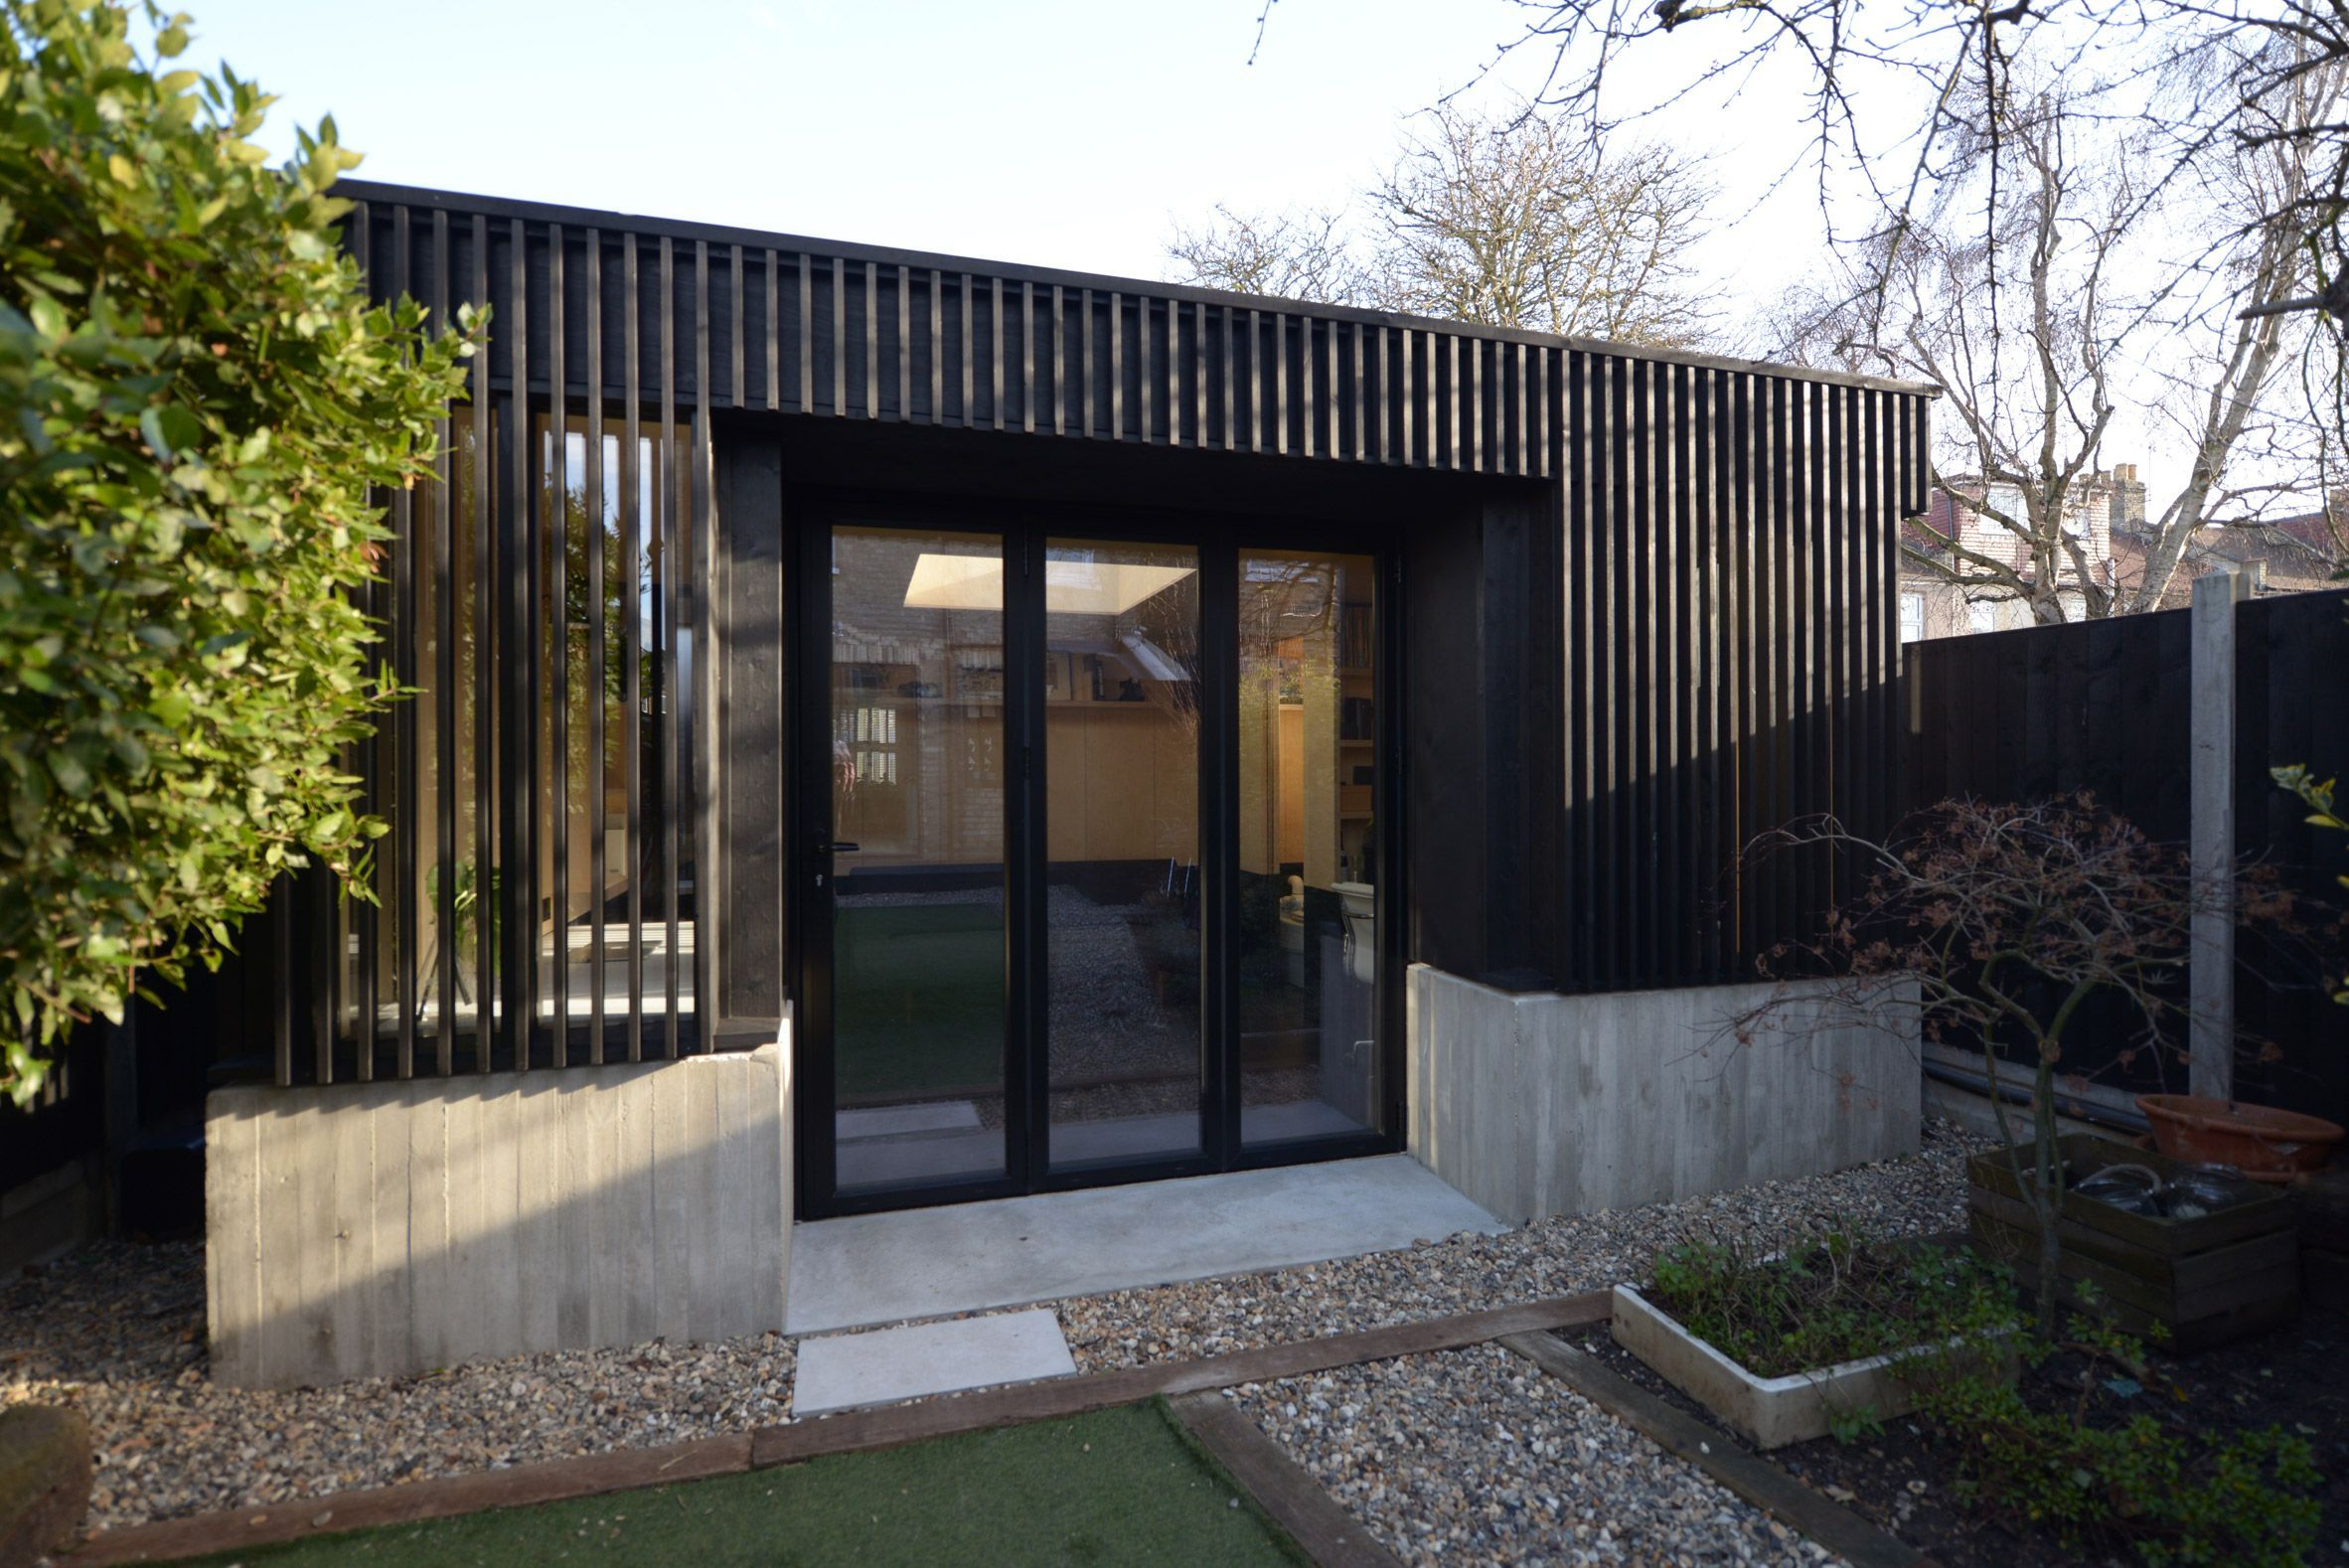 Eckford Chong Adds Blackened Timber Garden Studio To Refurbished London House Officedesign London House Garden Studio Architecture